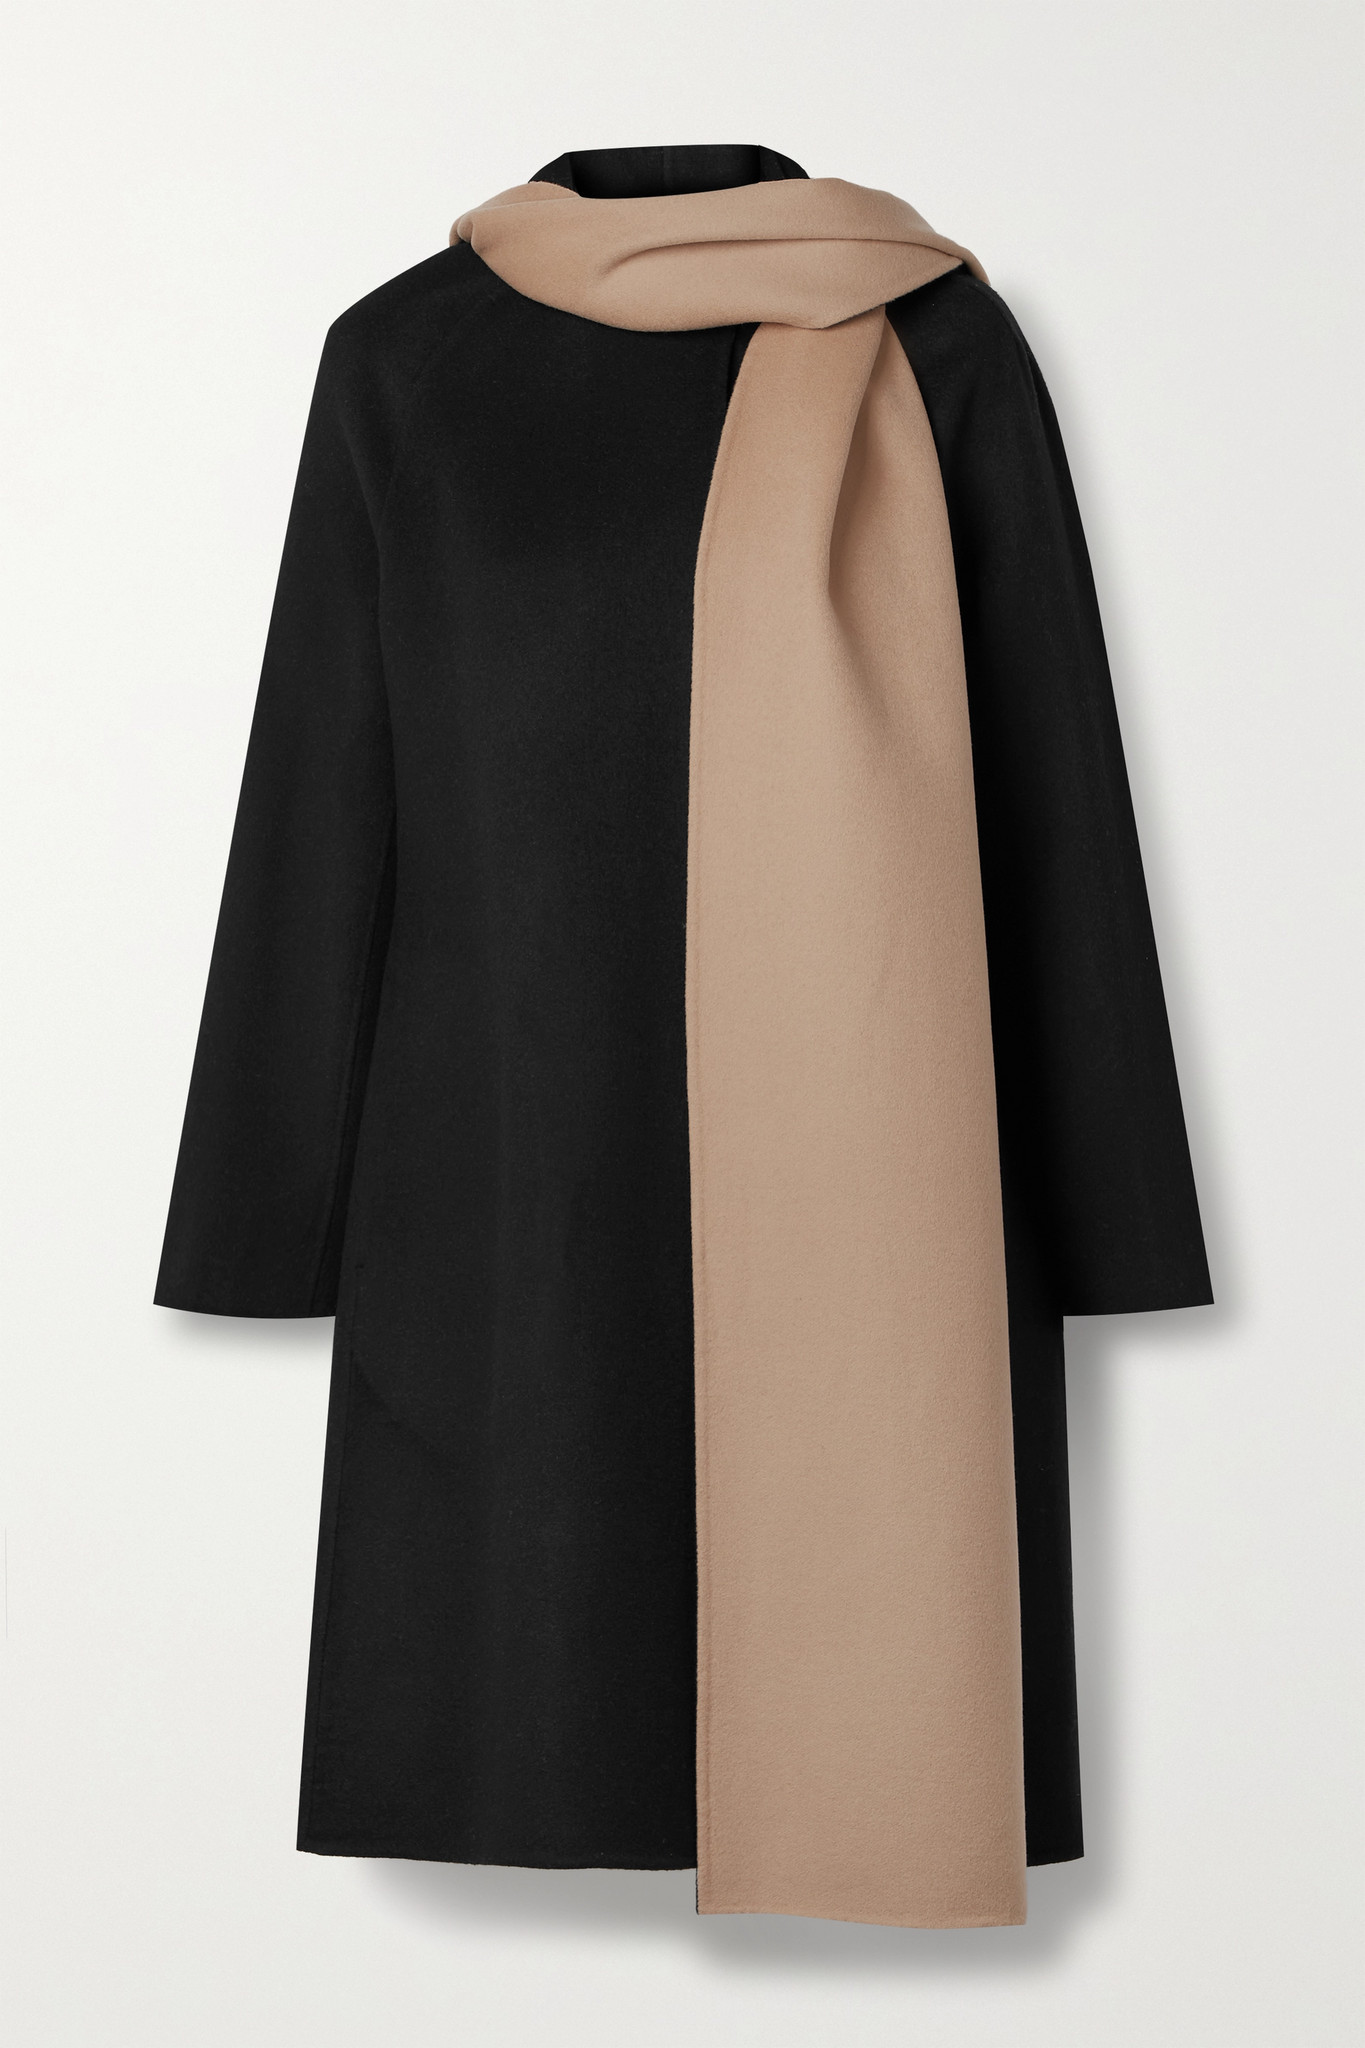 THEORY - Convertible Draped Two-tone Wool And Cashmere-blend Coat - Black - small